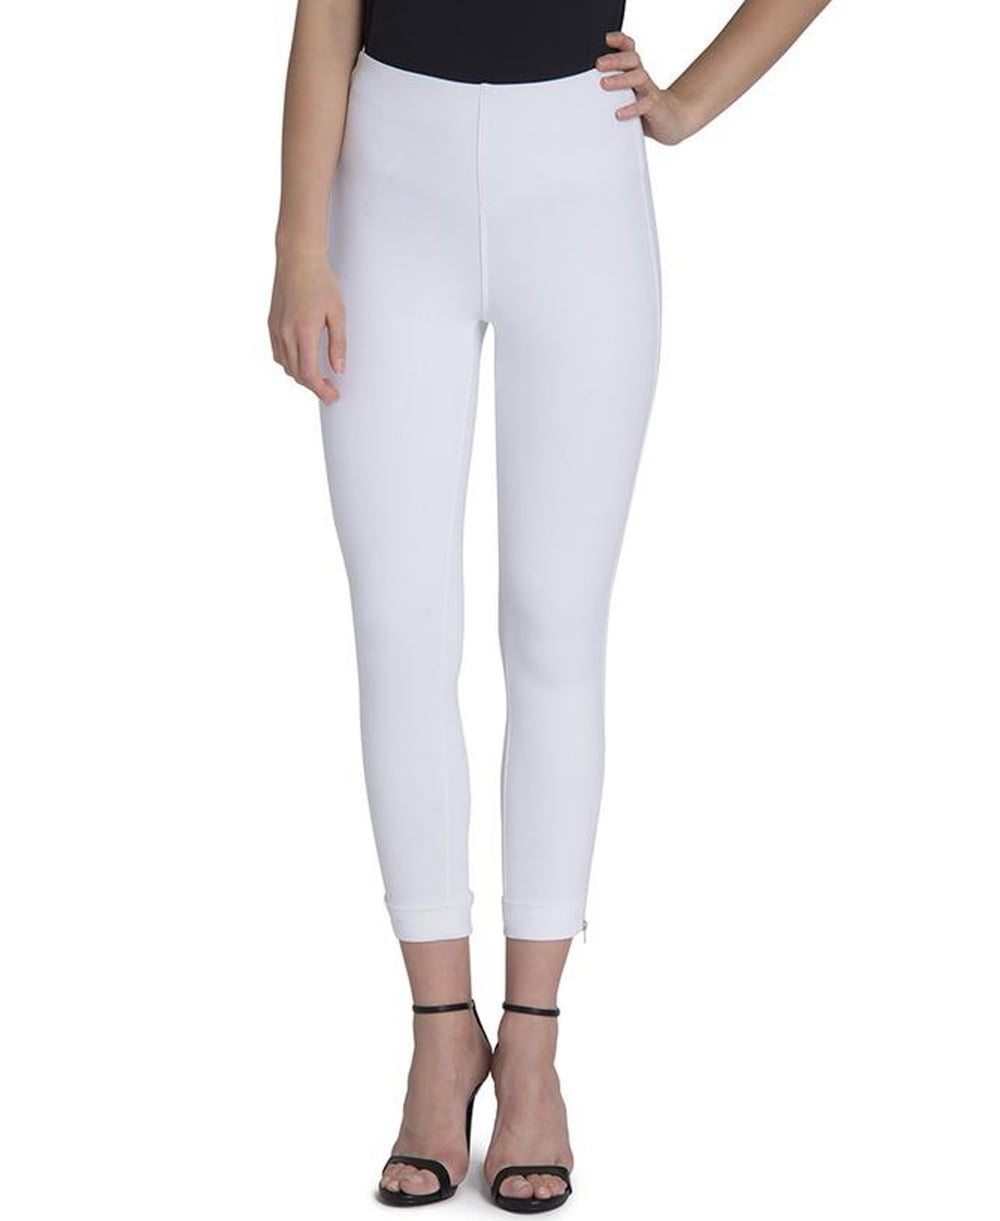 54db2daab81 Lysse Denim Cuffed Crop Legging - Leggings from luxury-legs.com UK